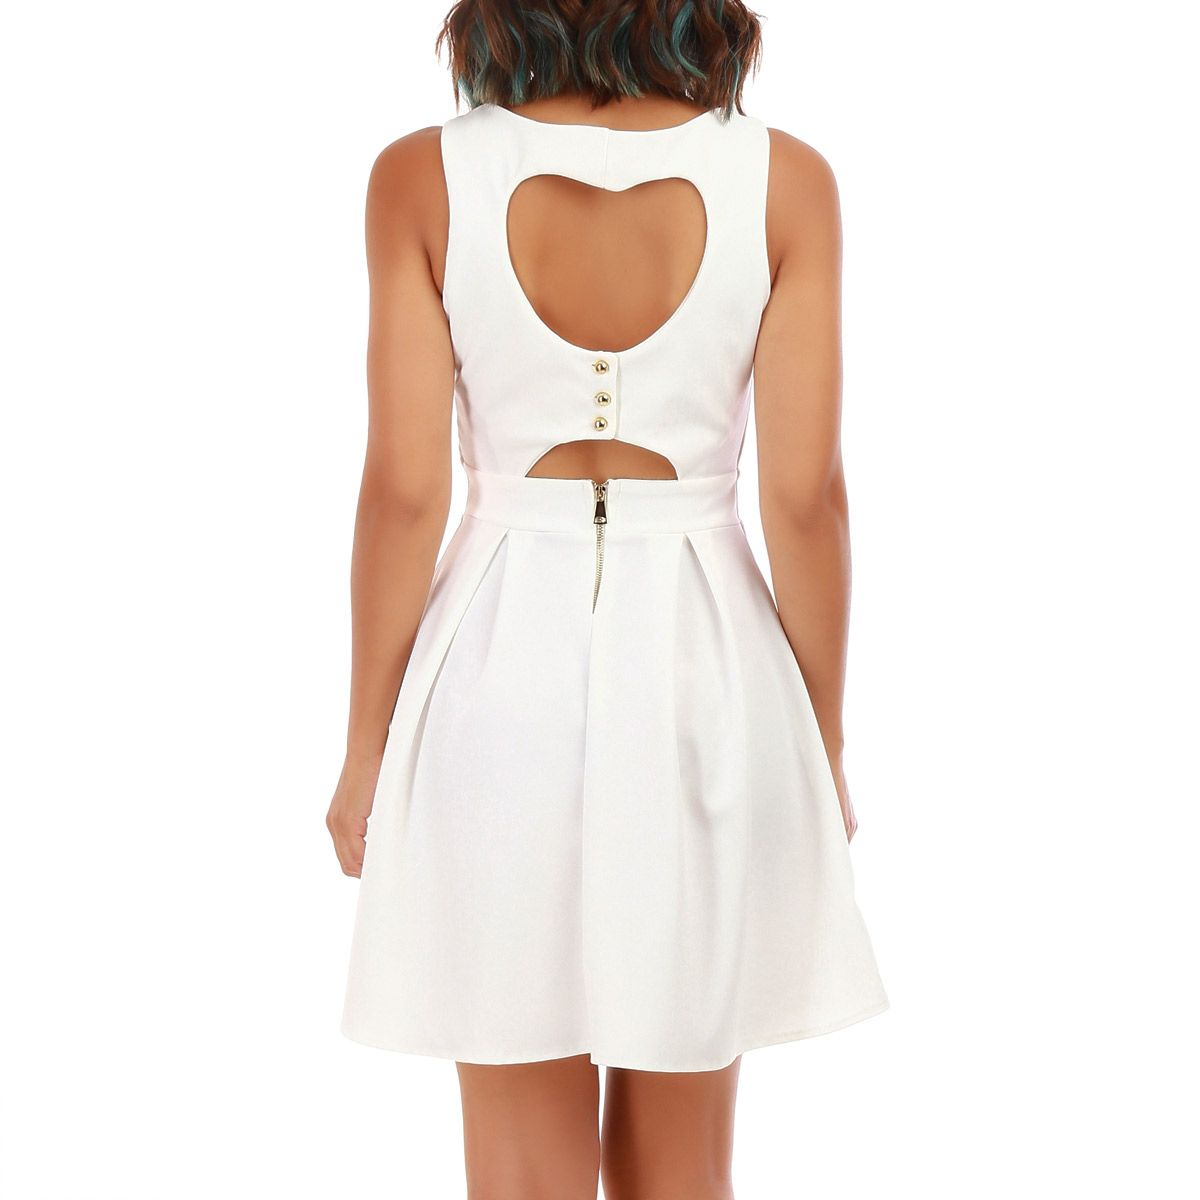 Robe coeur patineuse blanche